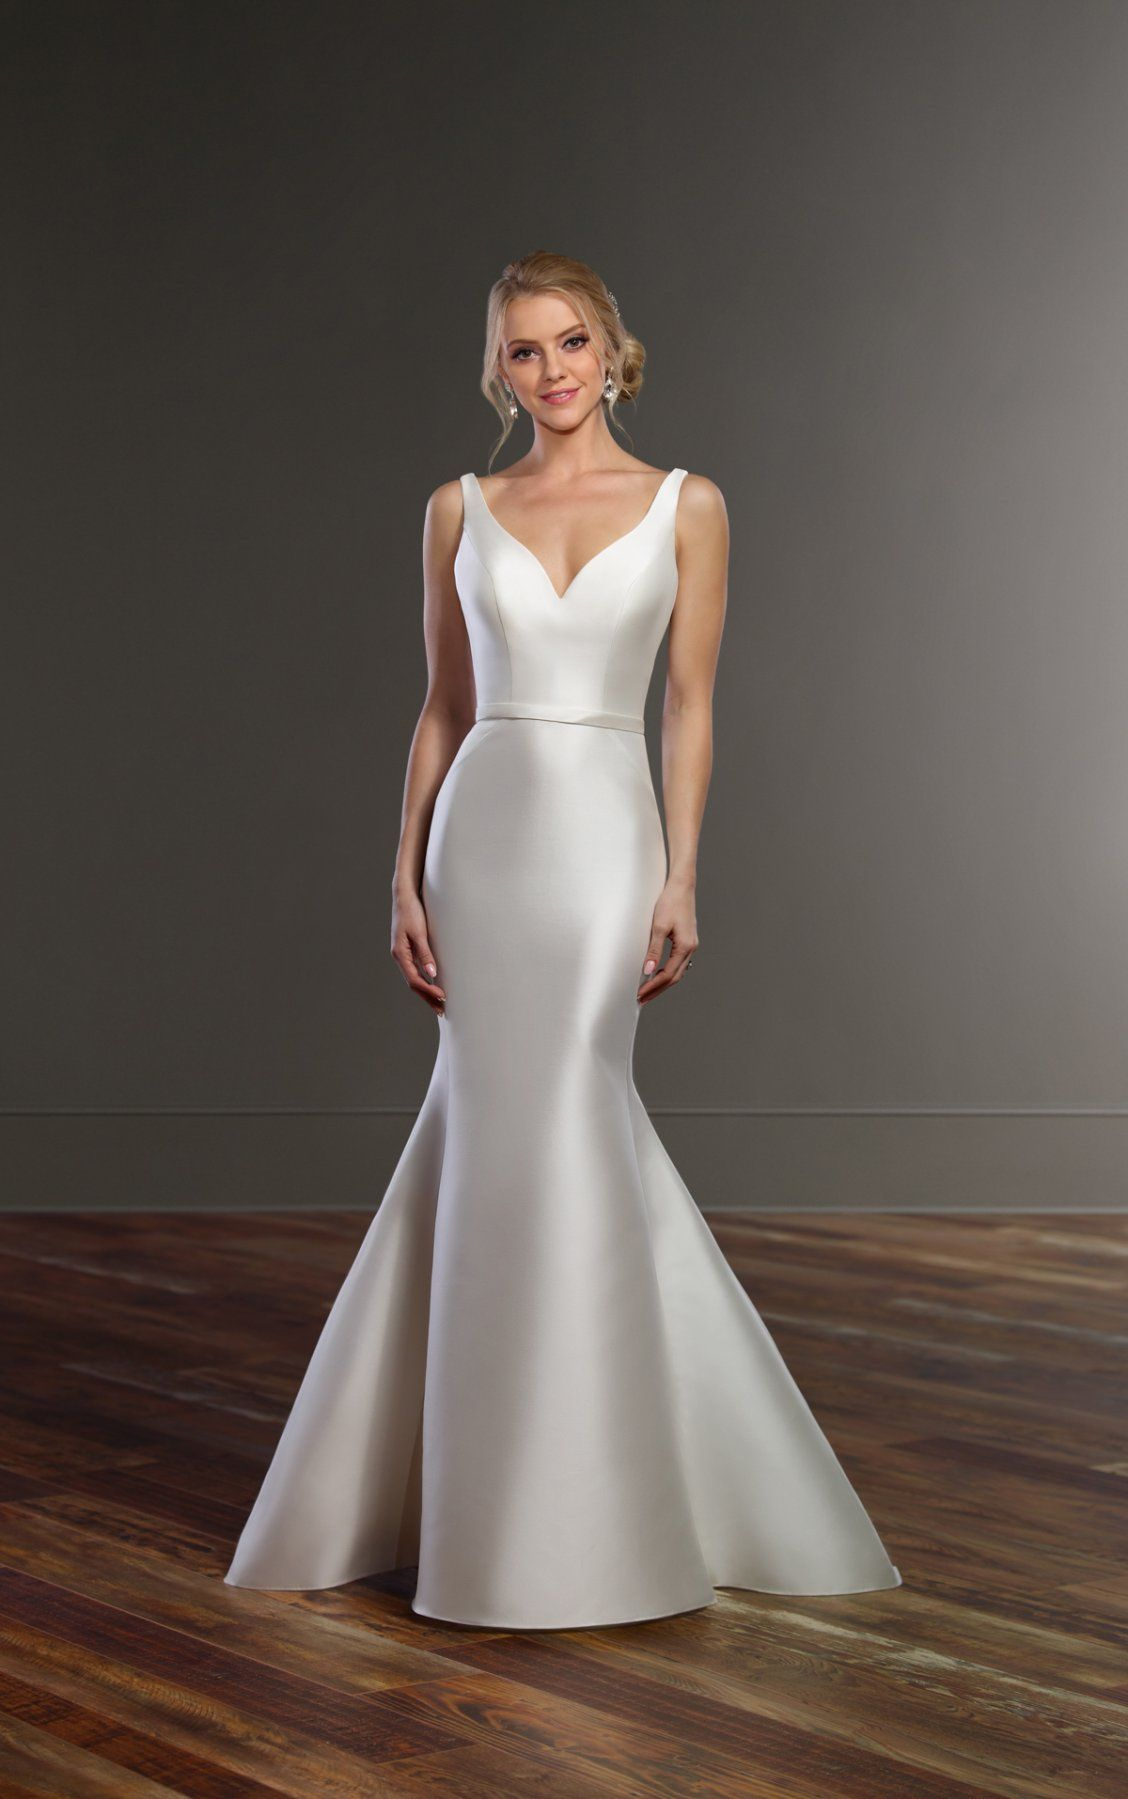 Bridal gowns structured wedding dresses simple weddings and